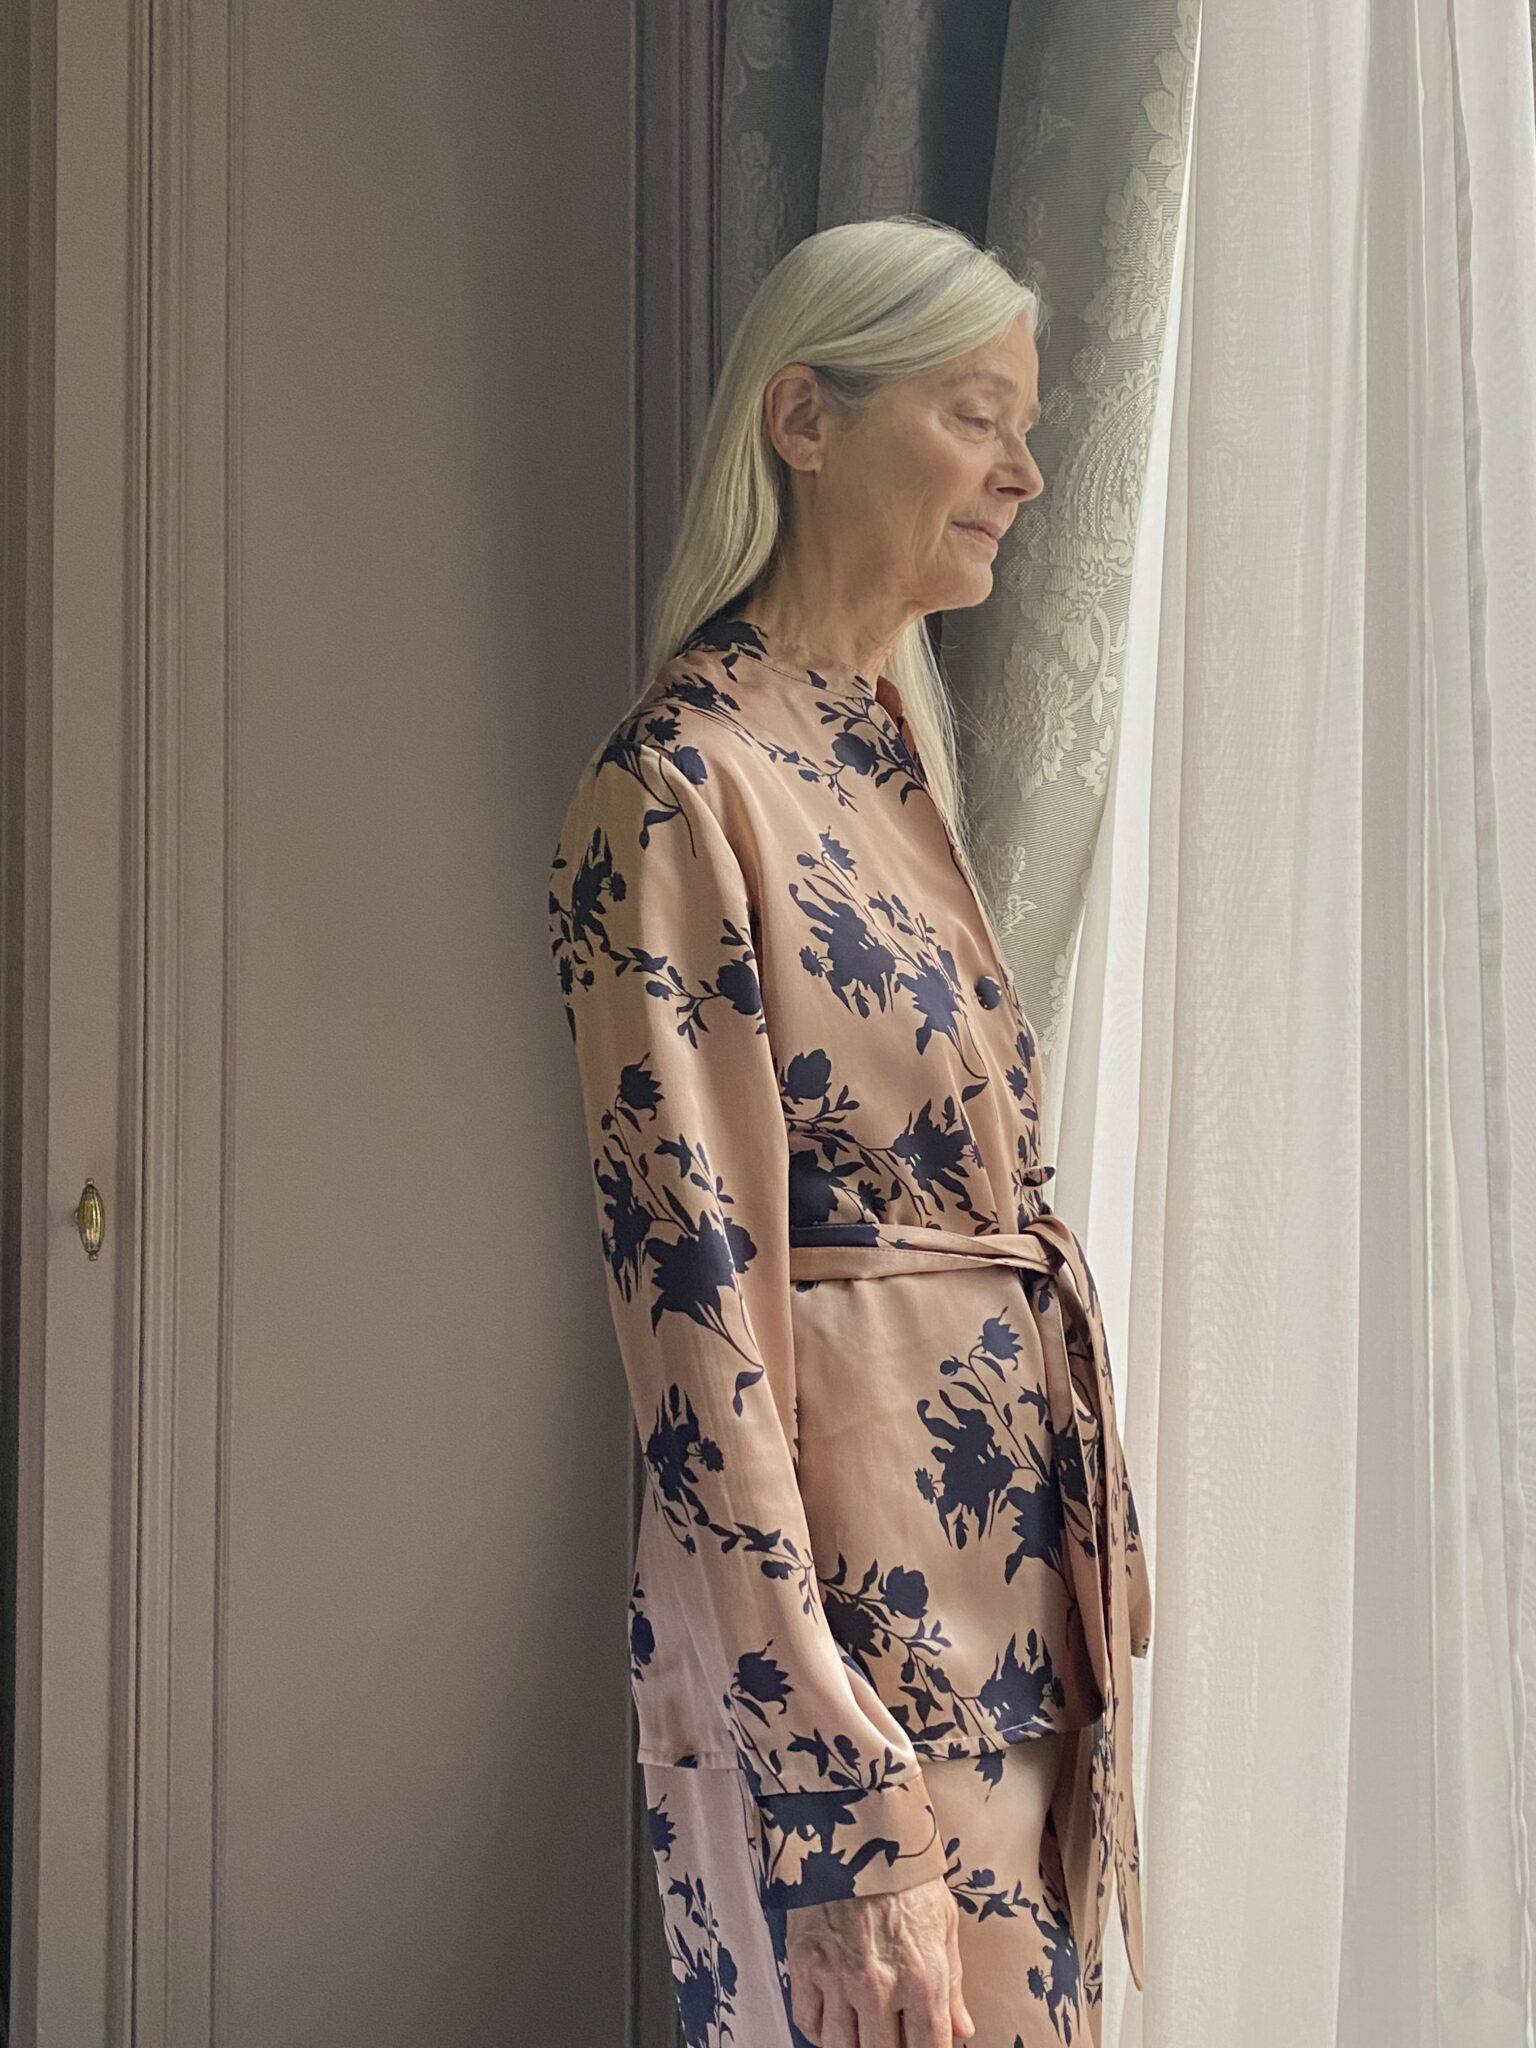 Axelle Doue in Diana d'Orville luxury silk suit roses prints